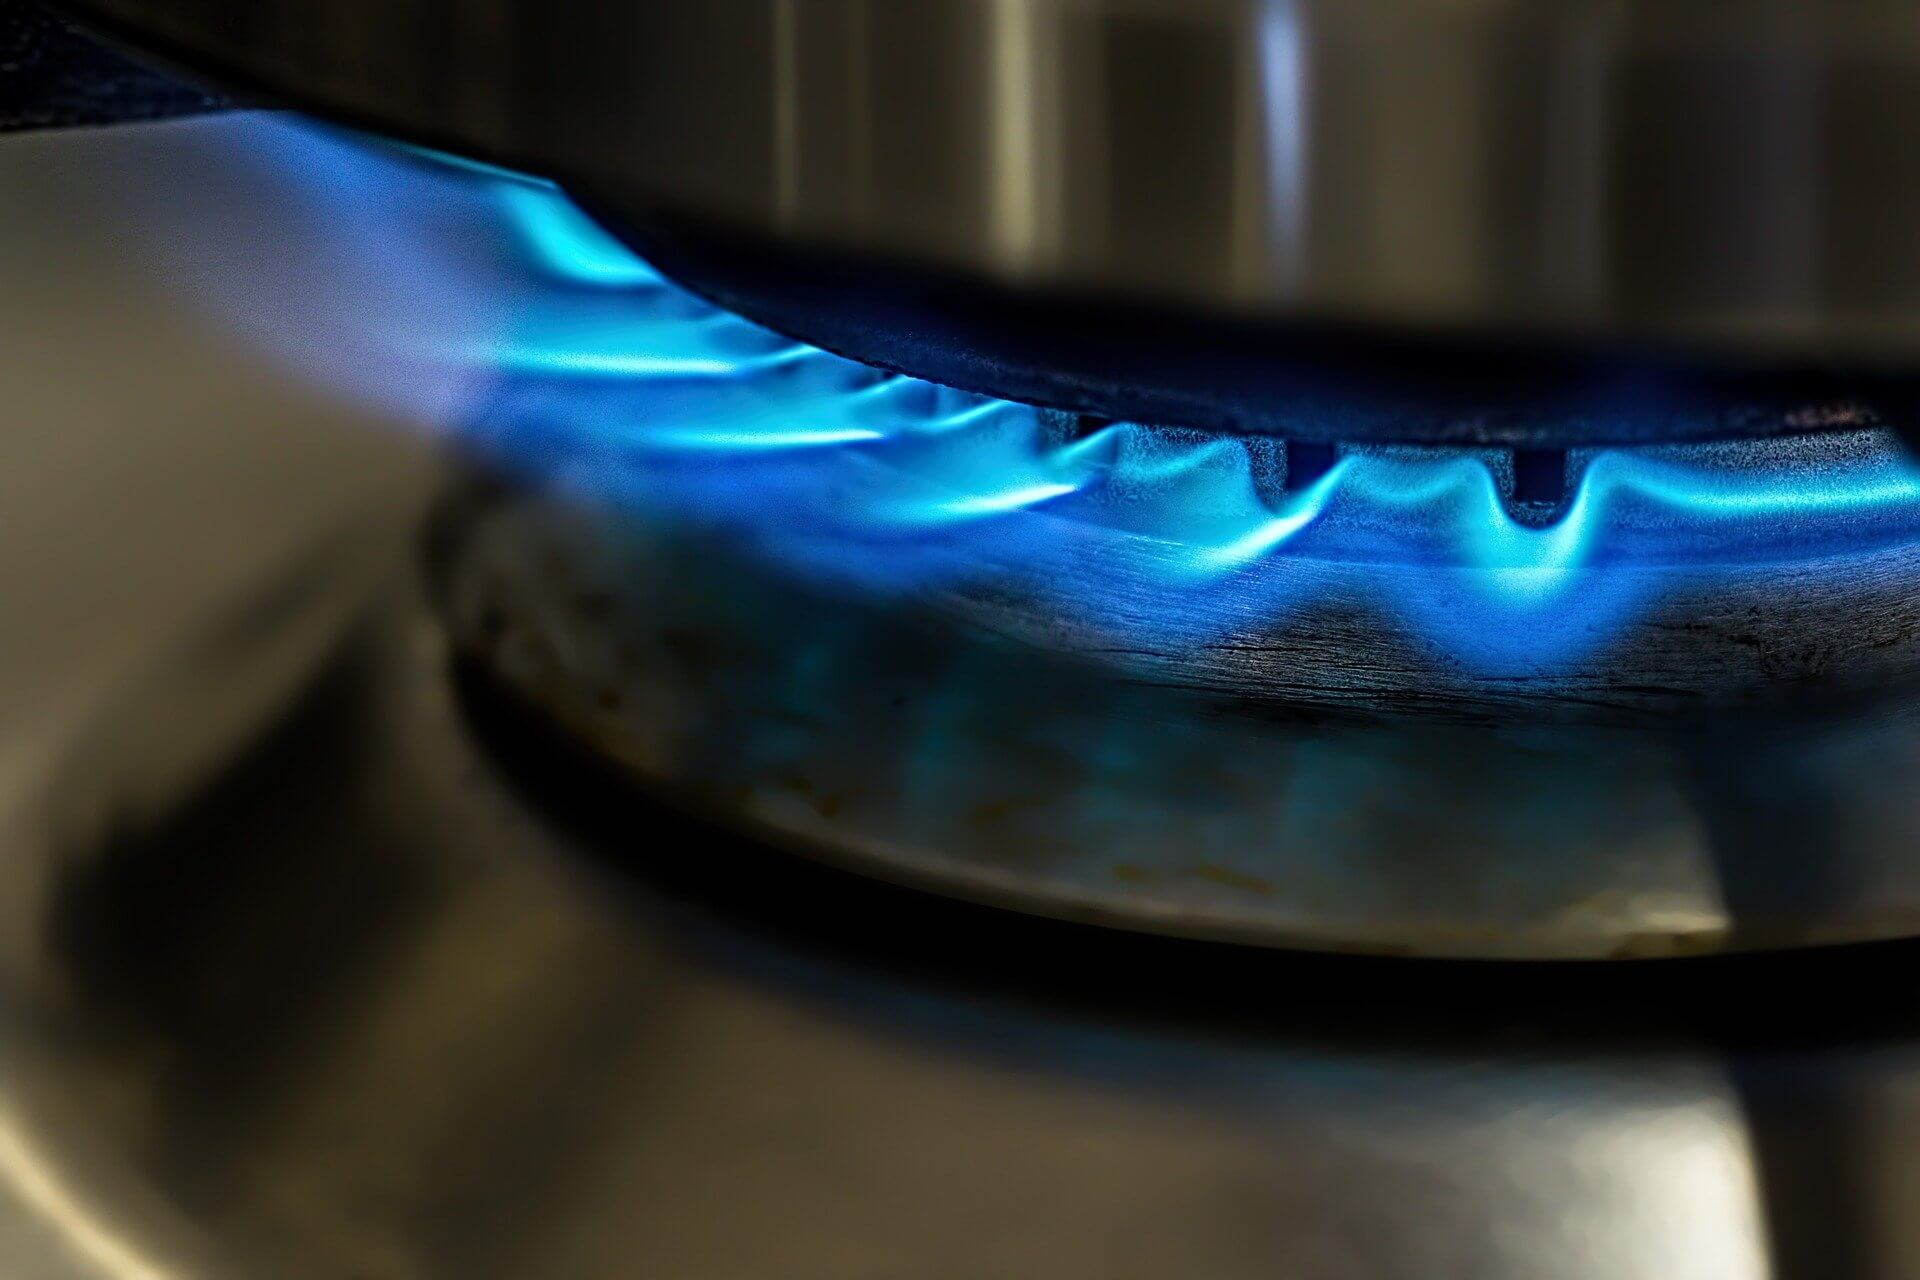 A close up of a gas burner on a stove top.